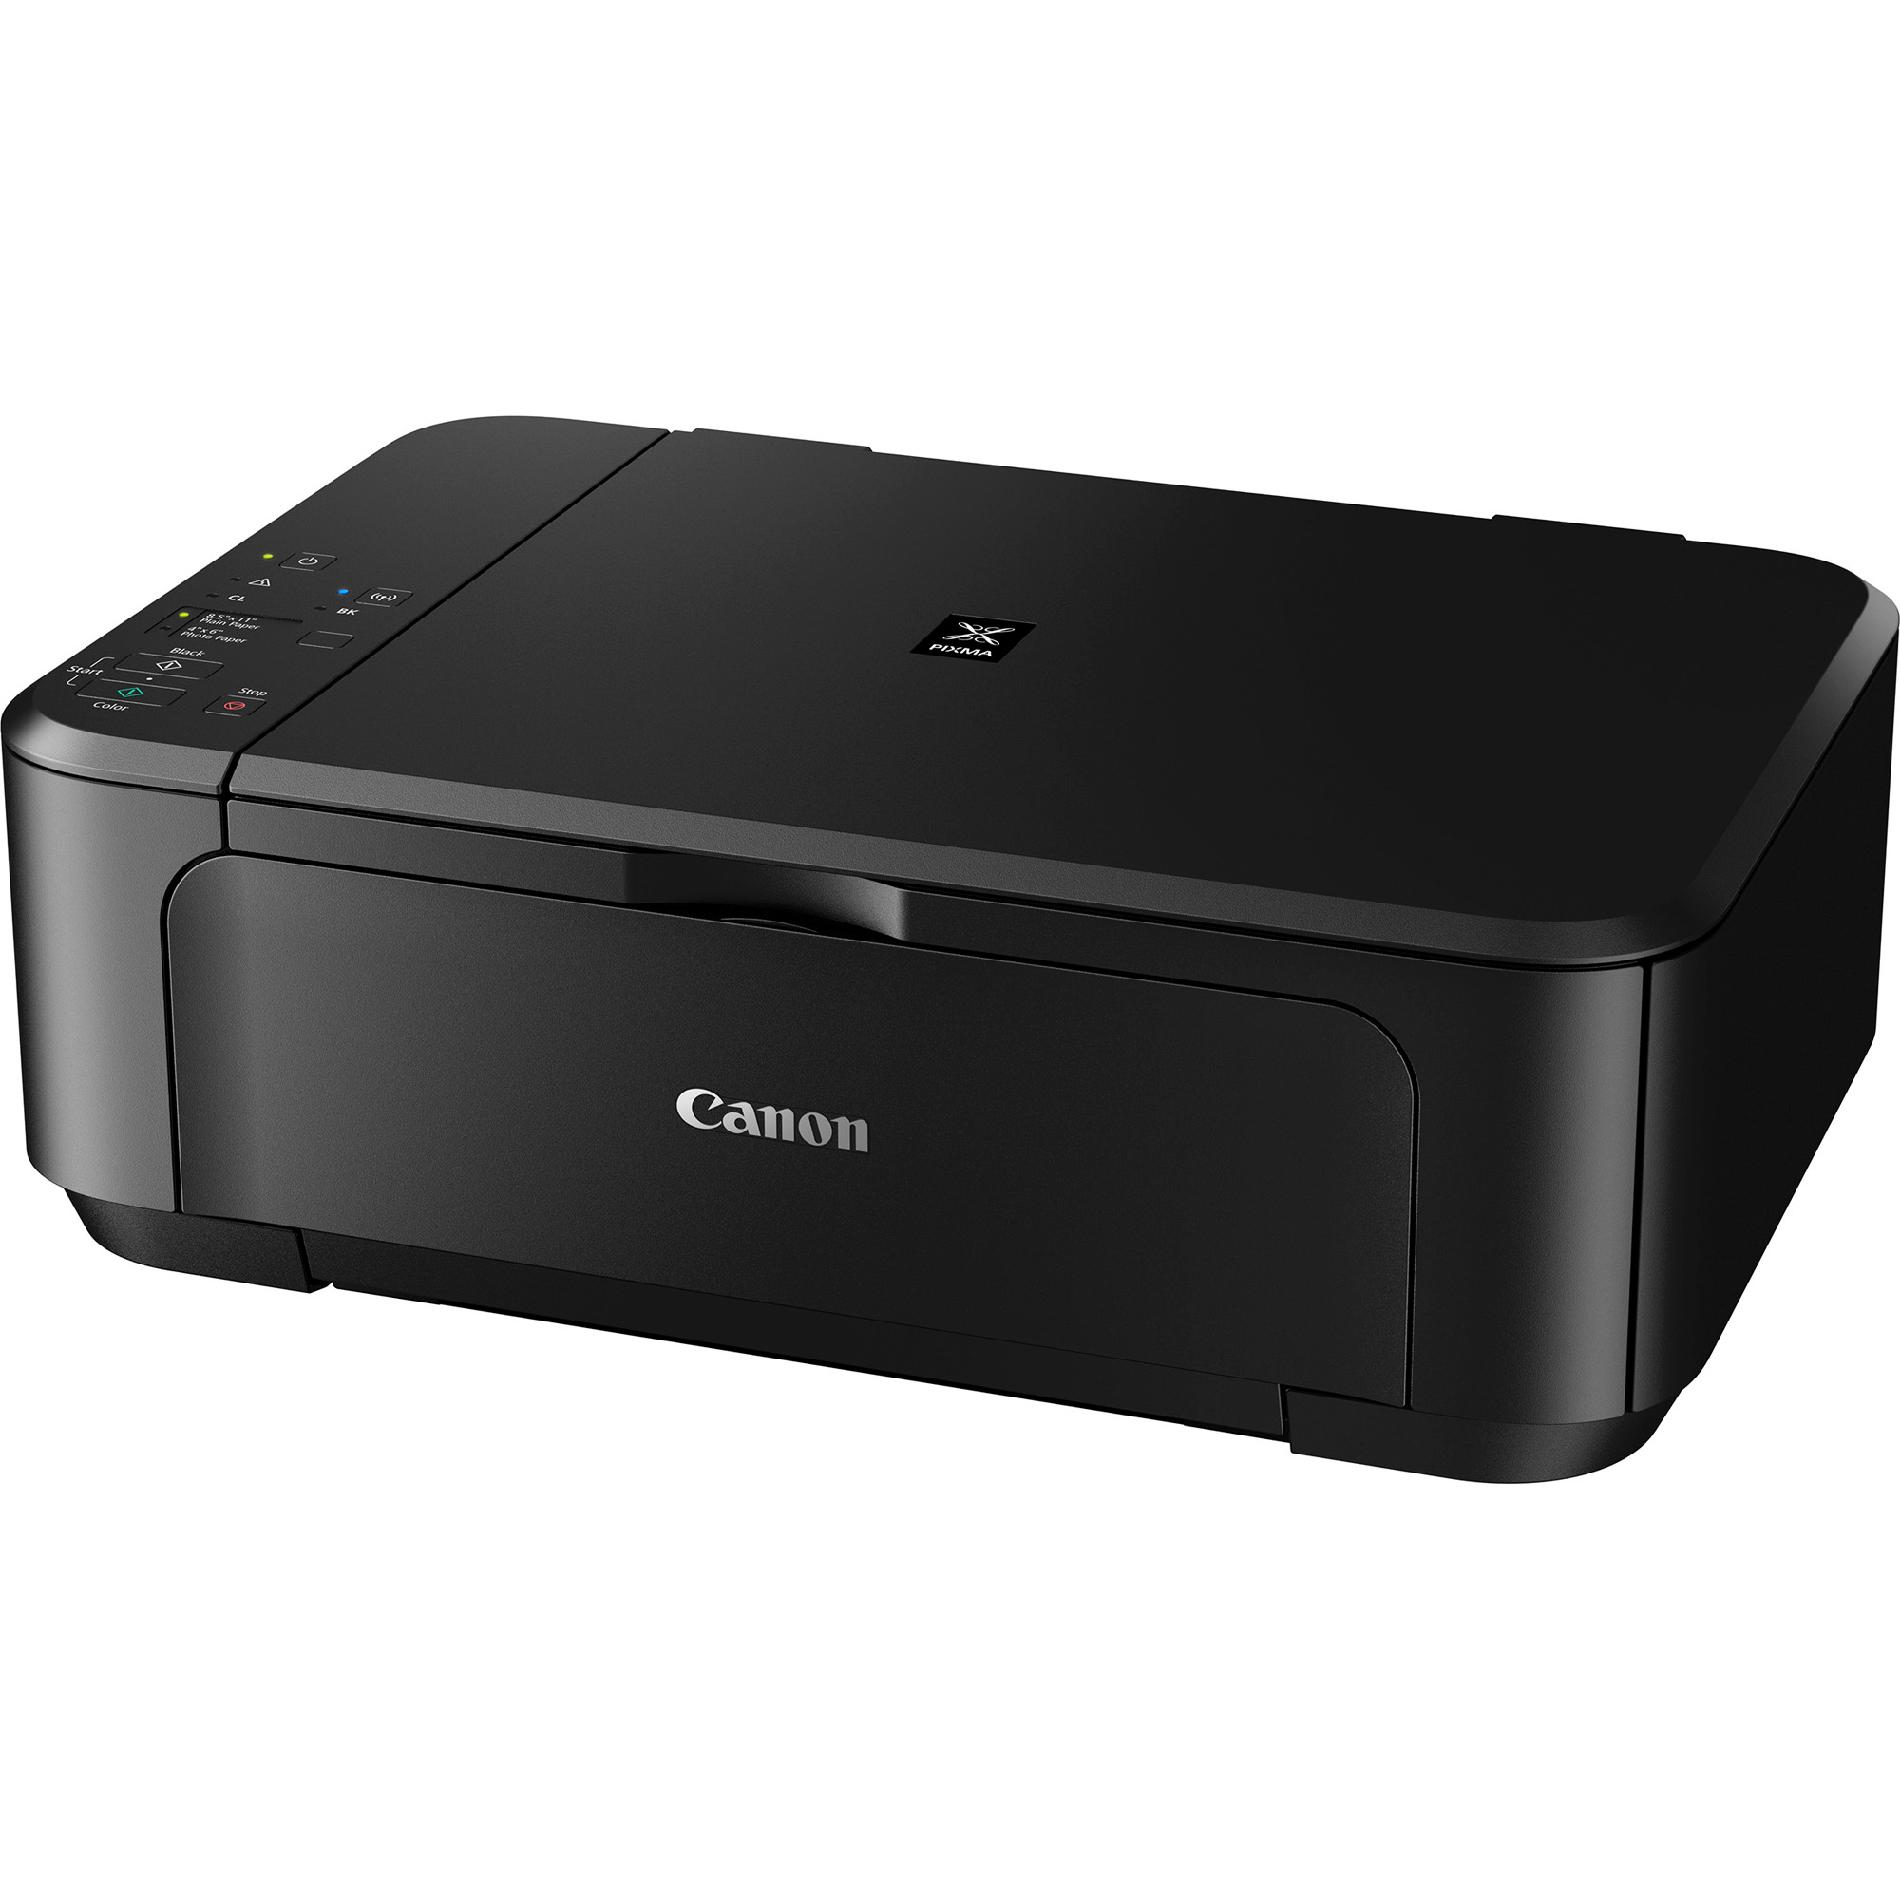 Canon Wireless Pixma MG3520 All-in-One Inkjet Photo Printer